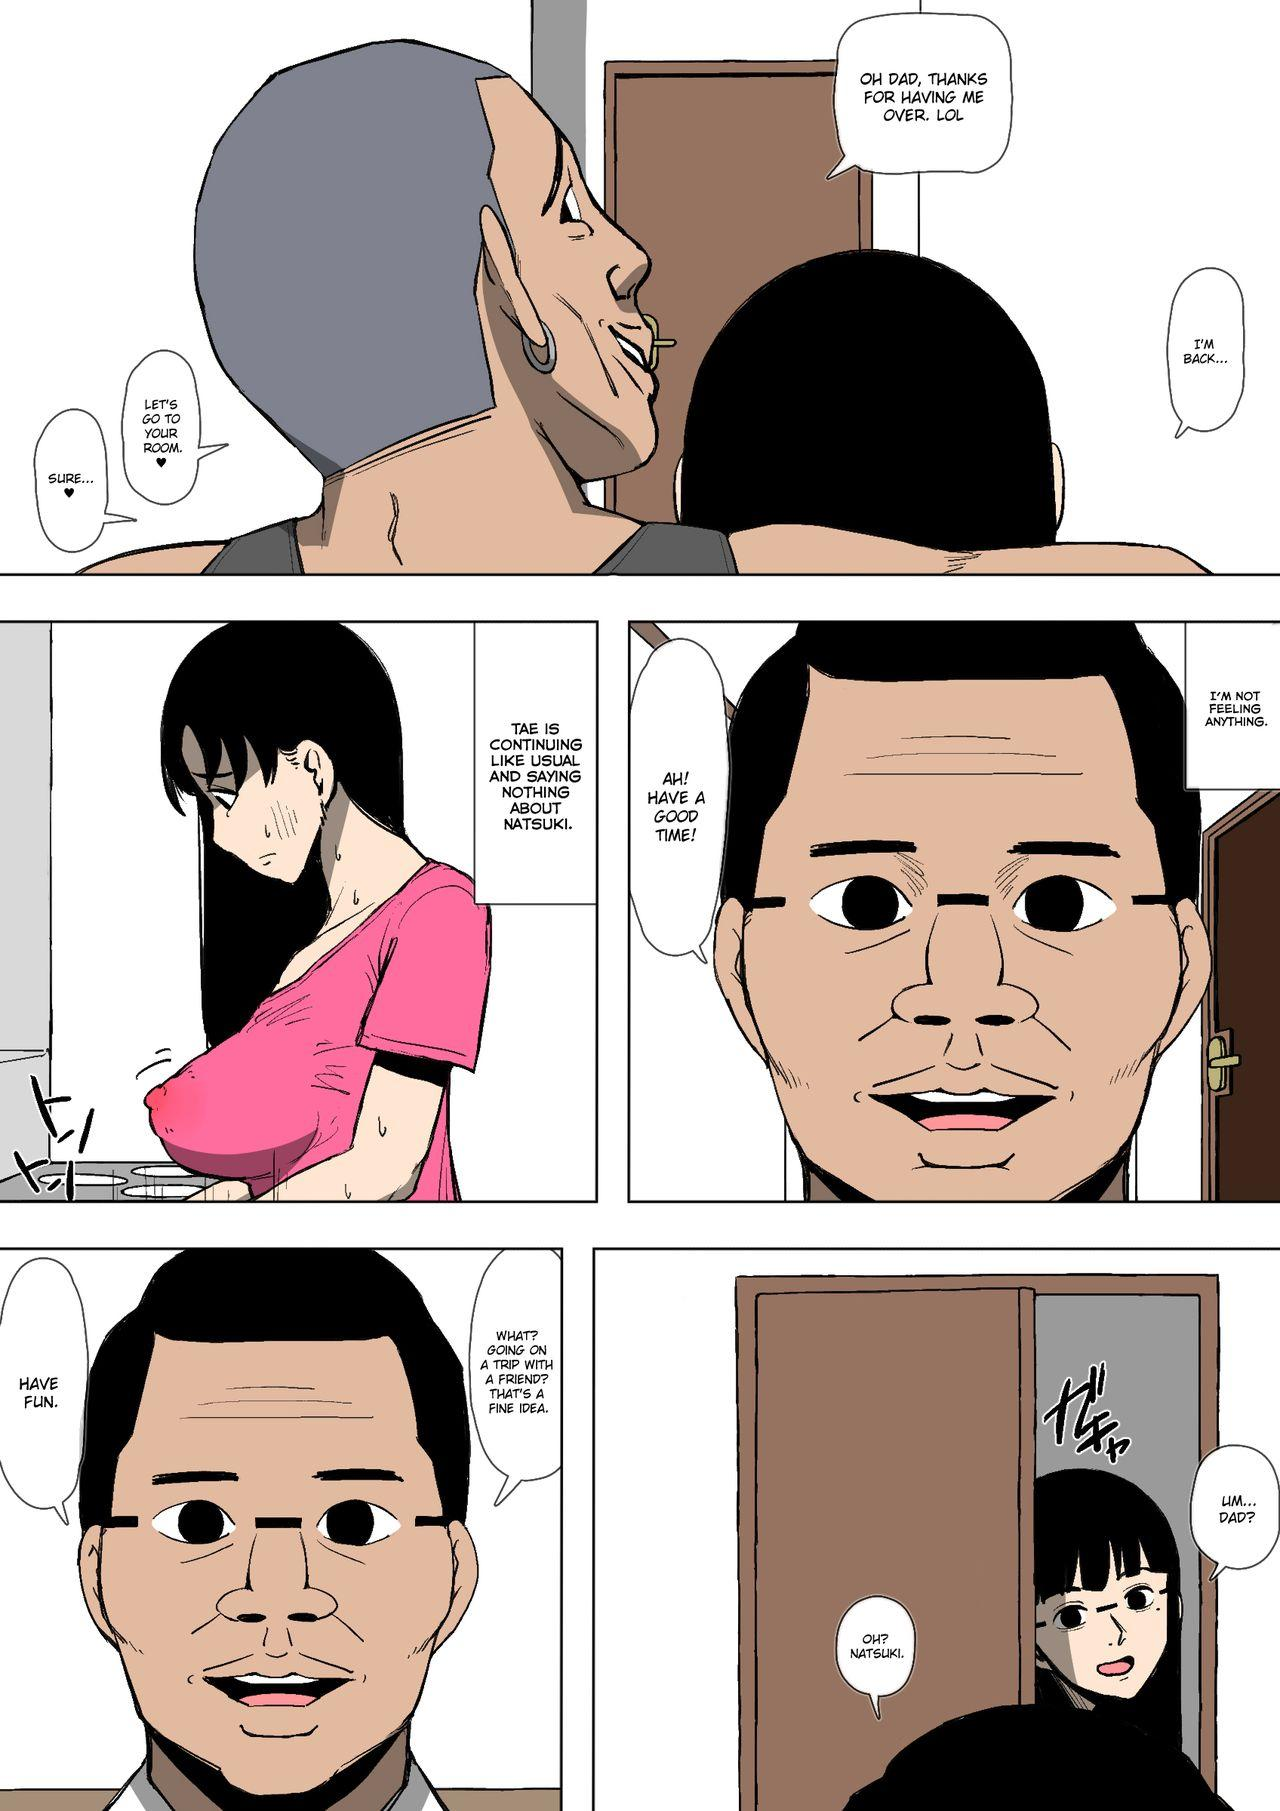 Musume ga Furyou ni Otosareteita   My Daughter was Corrupted by a Delinquent 24